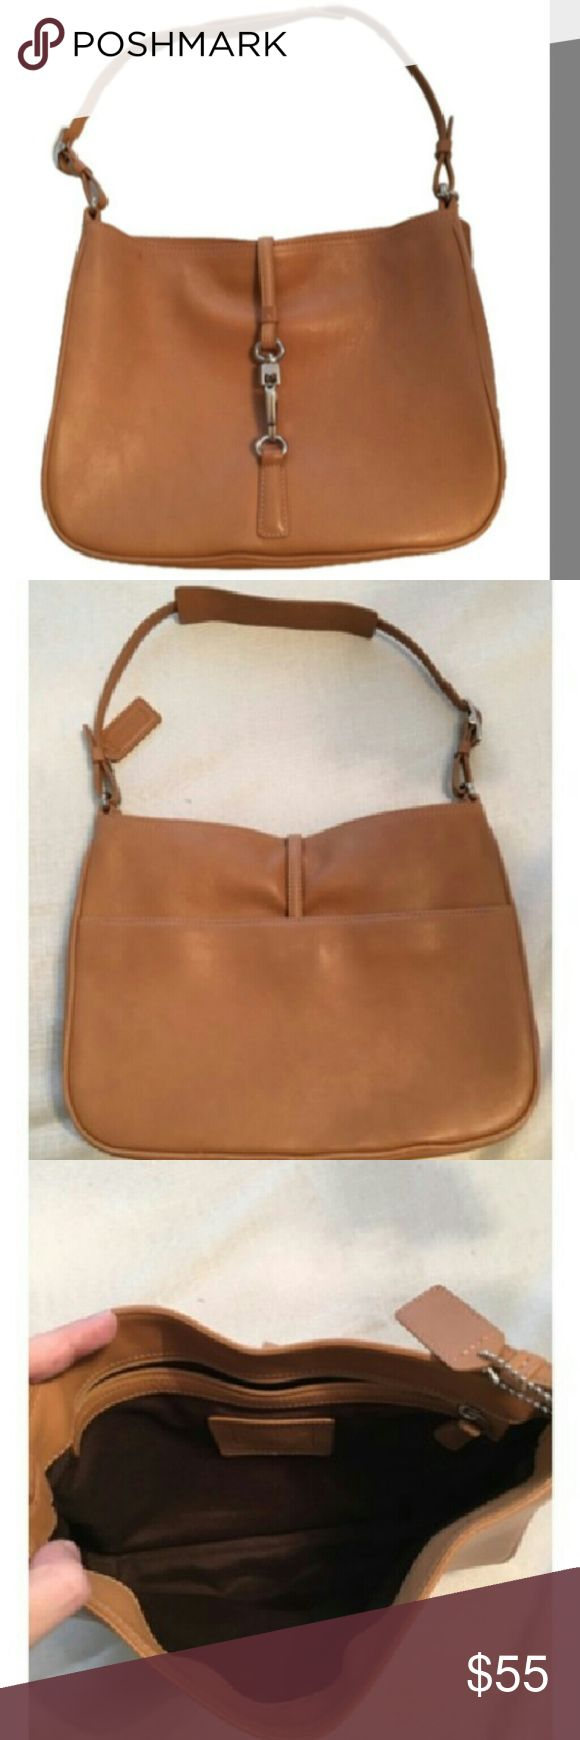 Coach  Hobo Bag Like new, authentic Coach hobo. Simple syle with great interior organization. Great for daily use or a girls night out! Coach Bags Hobos